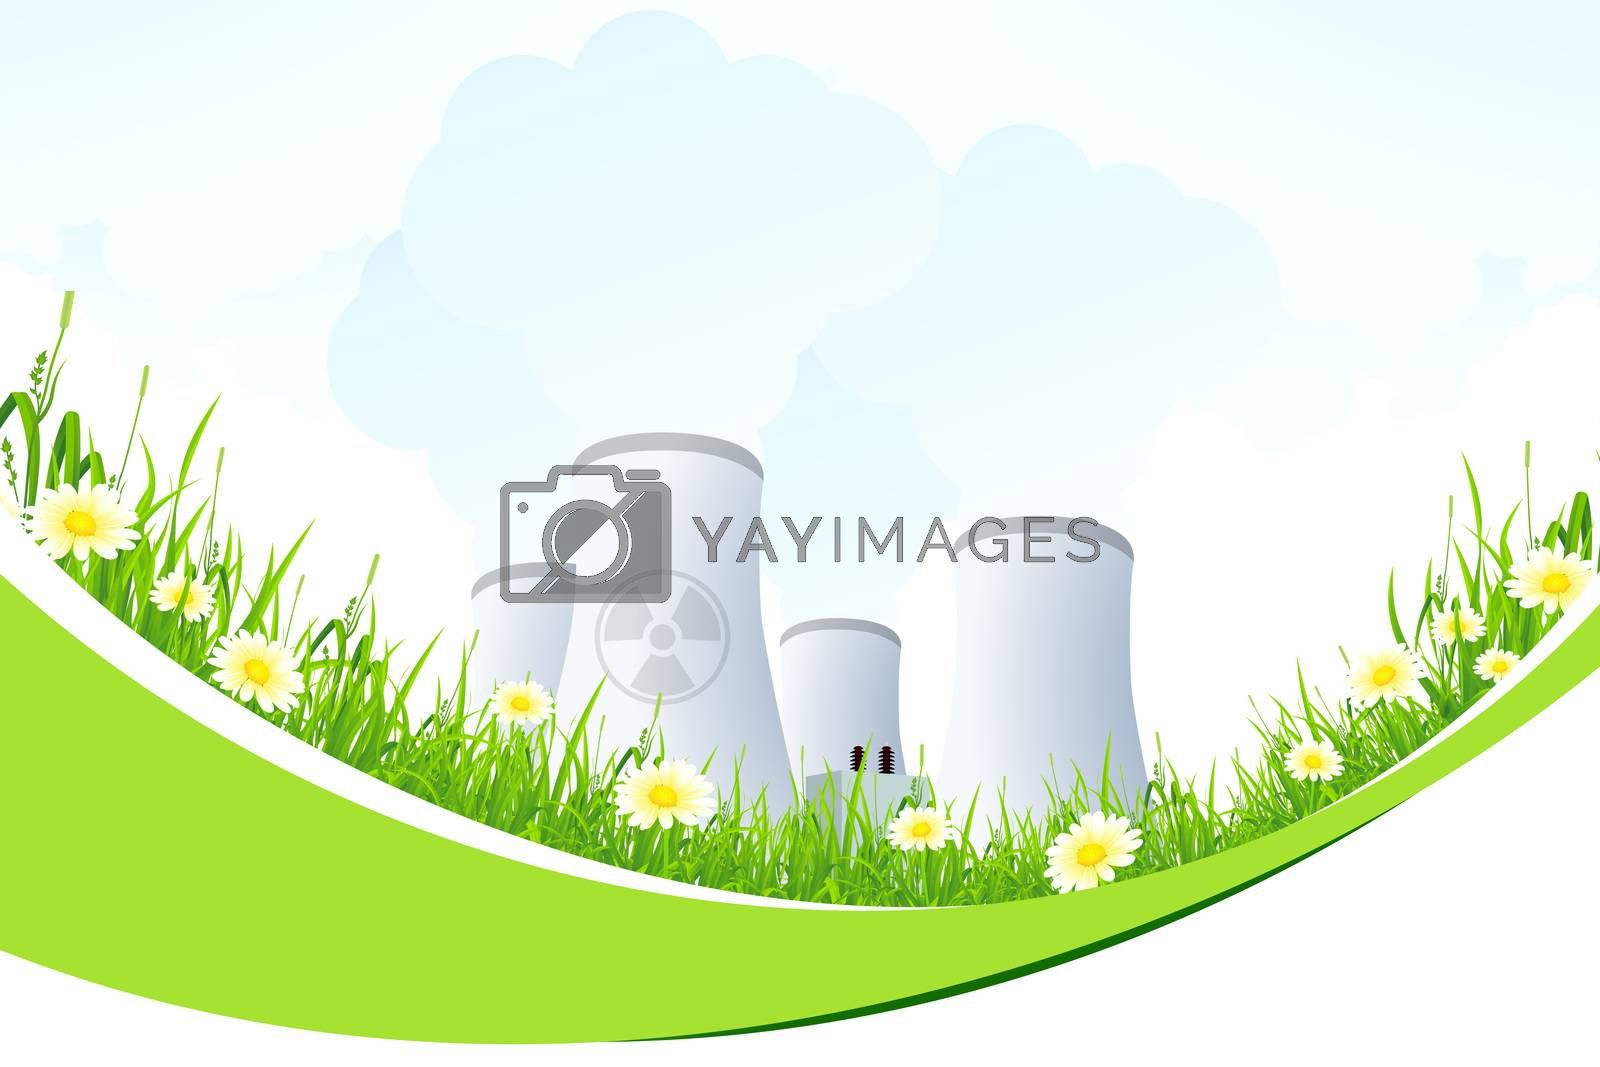 Abstract Background with Nuclear Power Plant and Grass by WaD